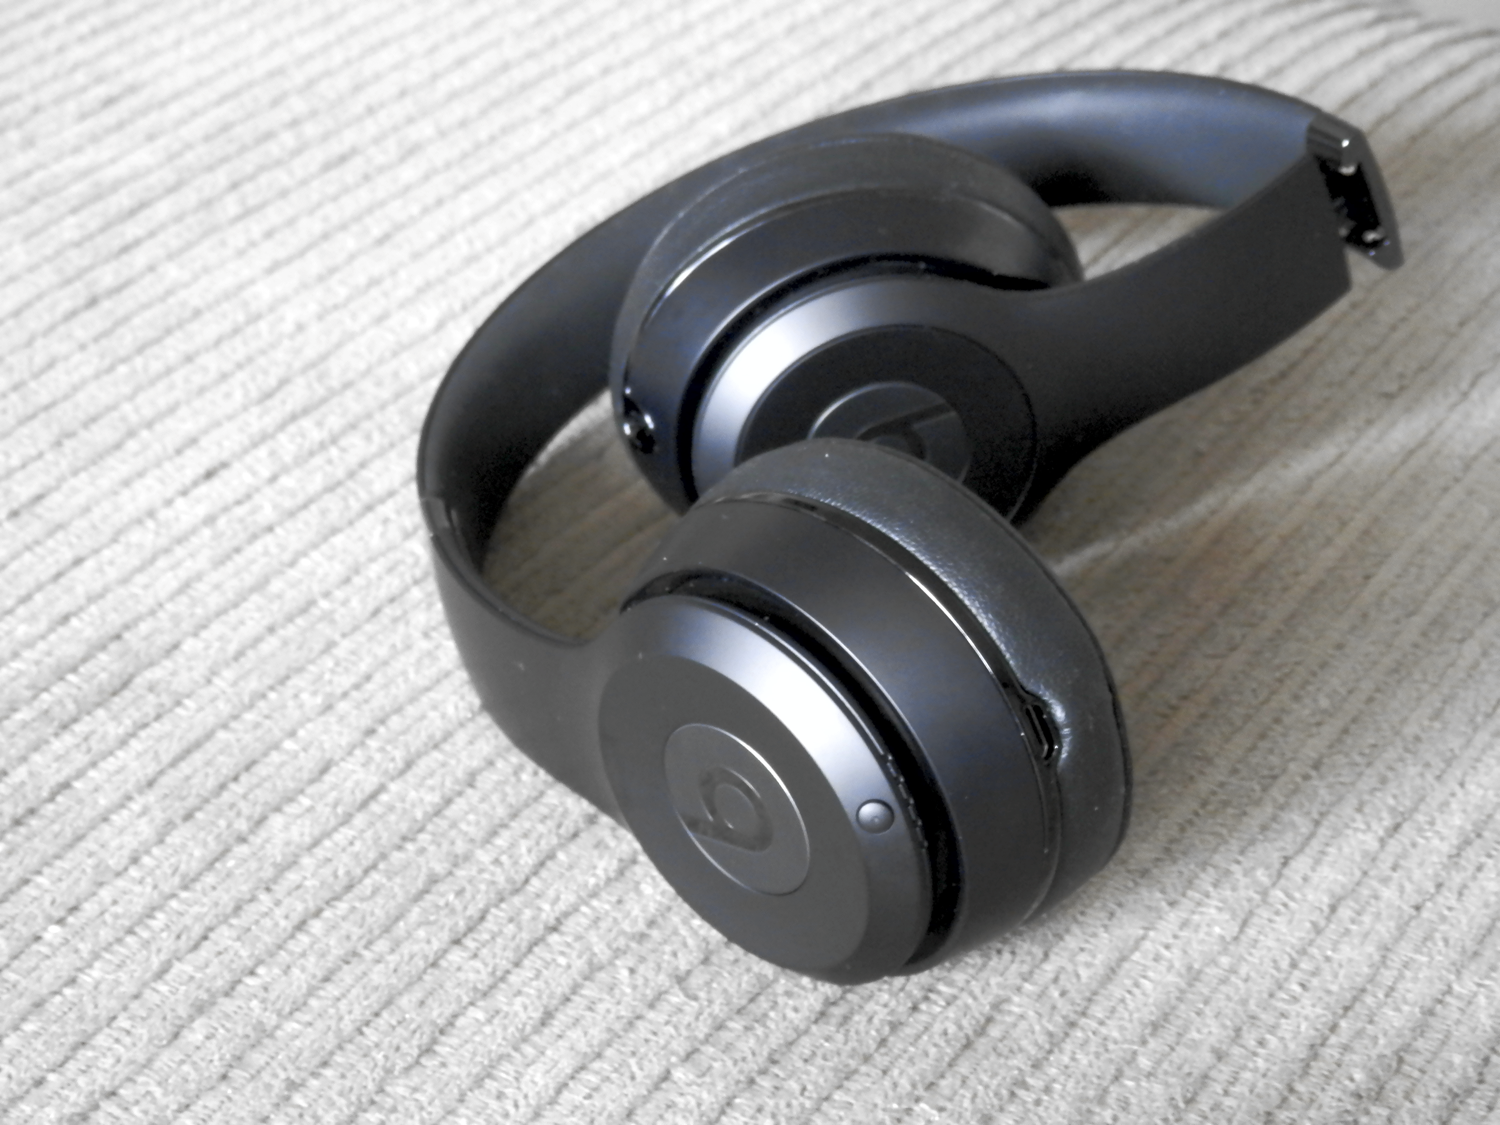 39813535ac2 If you're in the market for a nice headphone and live in the United States,  you'll be pleased to learn that Apple's discounted popular models of Beats  ...